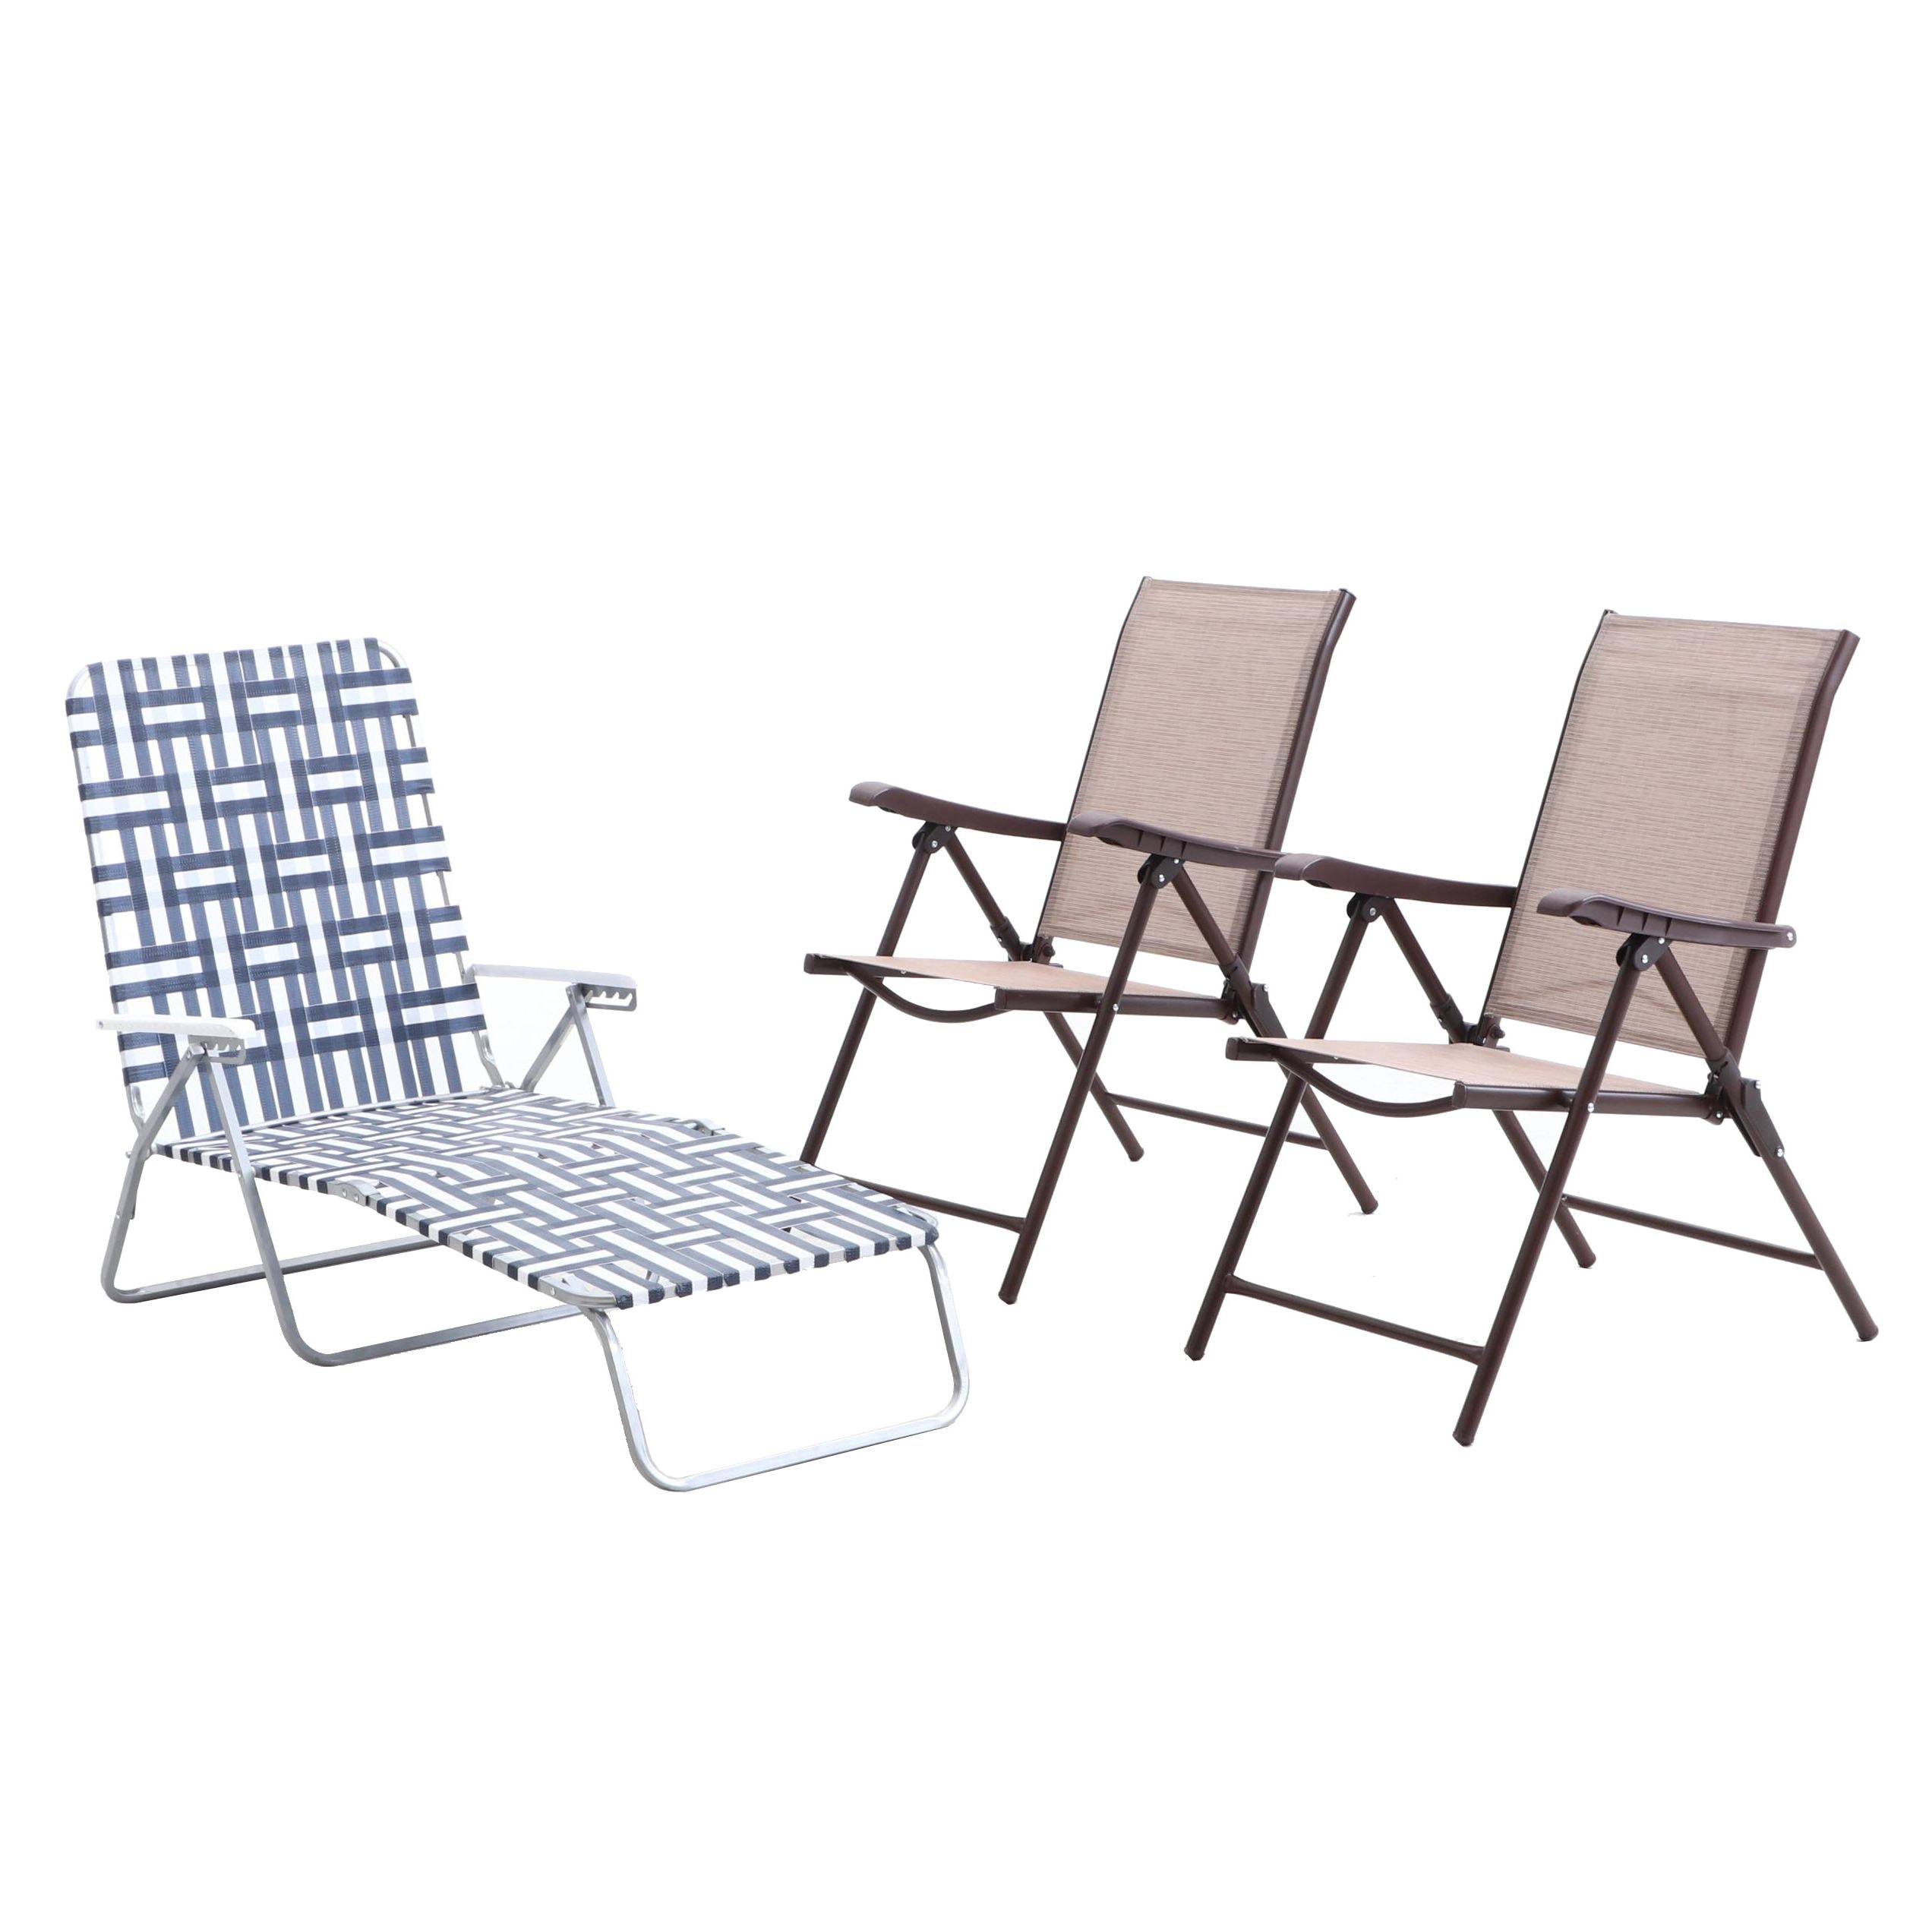 Apex Living Folding Patio Chairs and Chaise Lounge